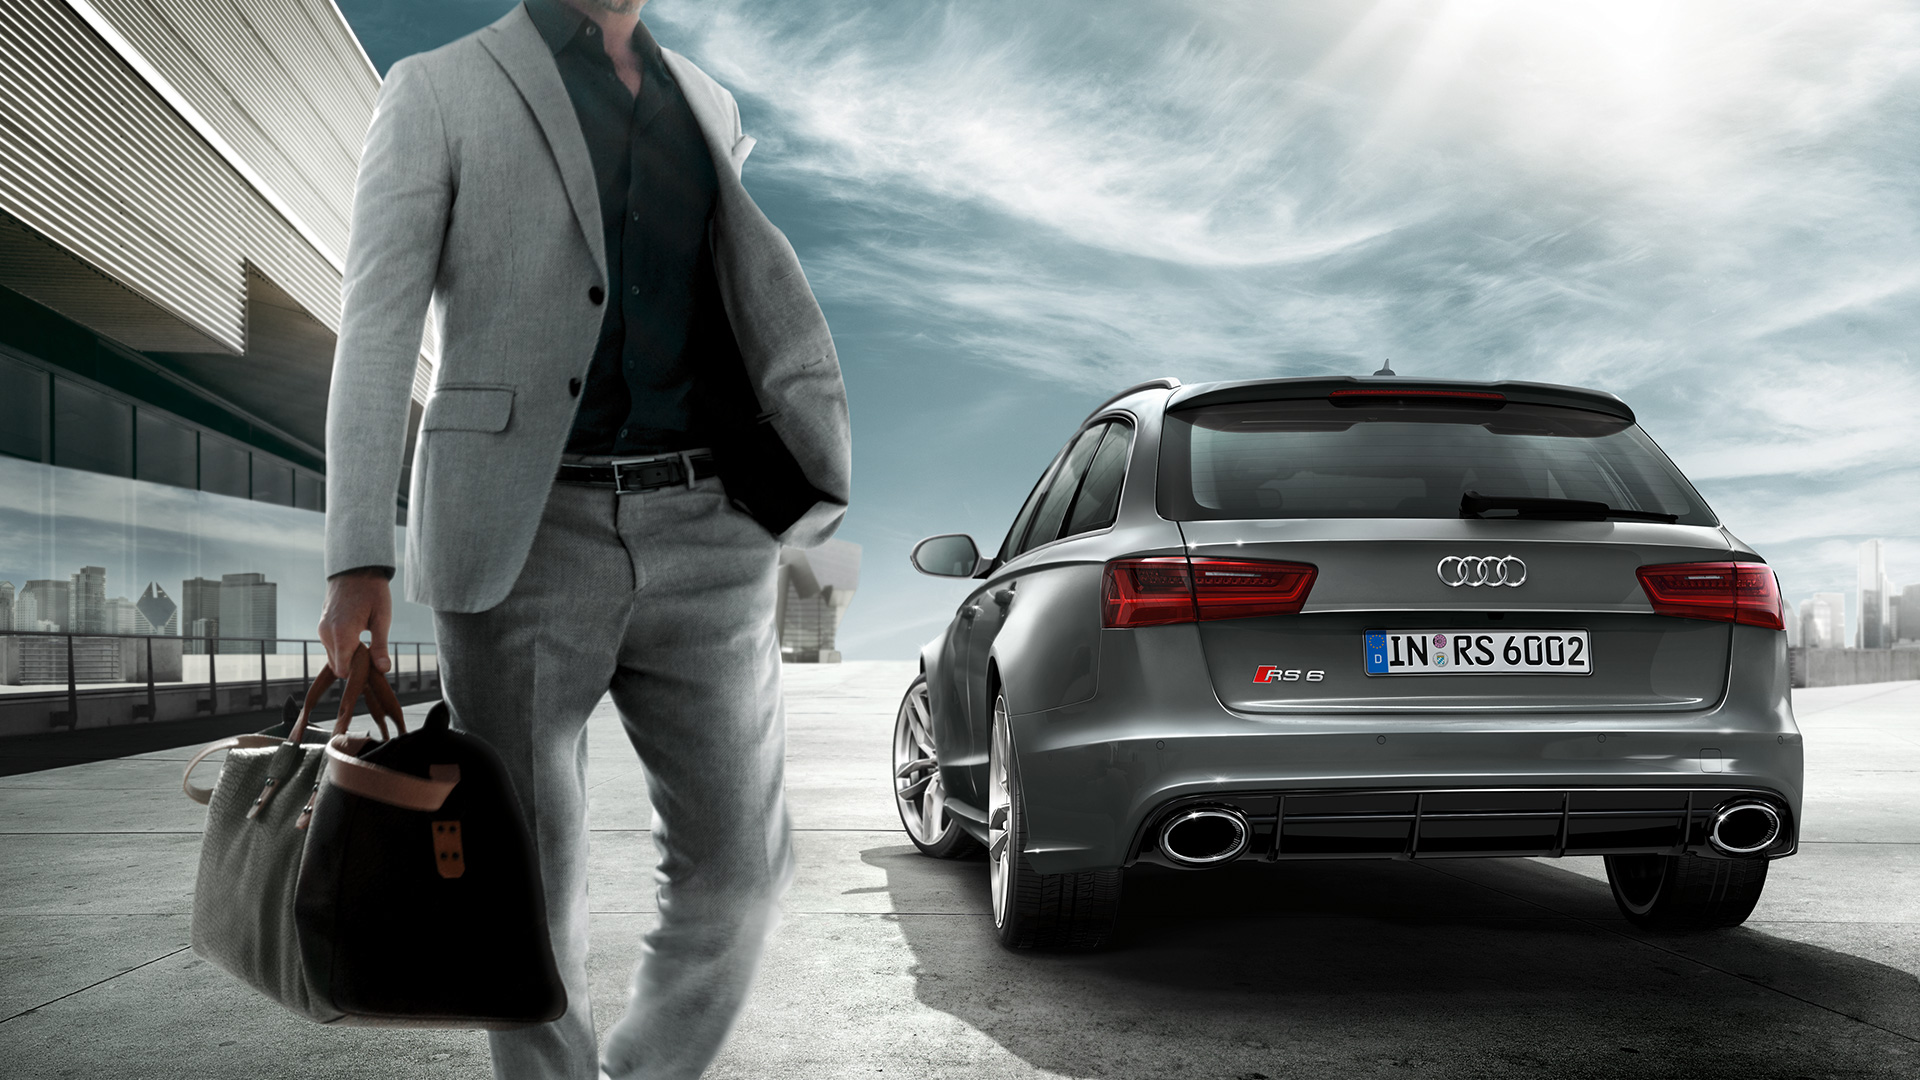 1920x1080 - Audi RS6 Wallpapers 16